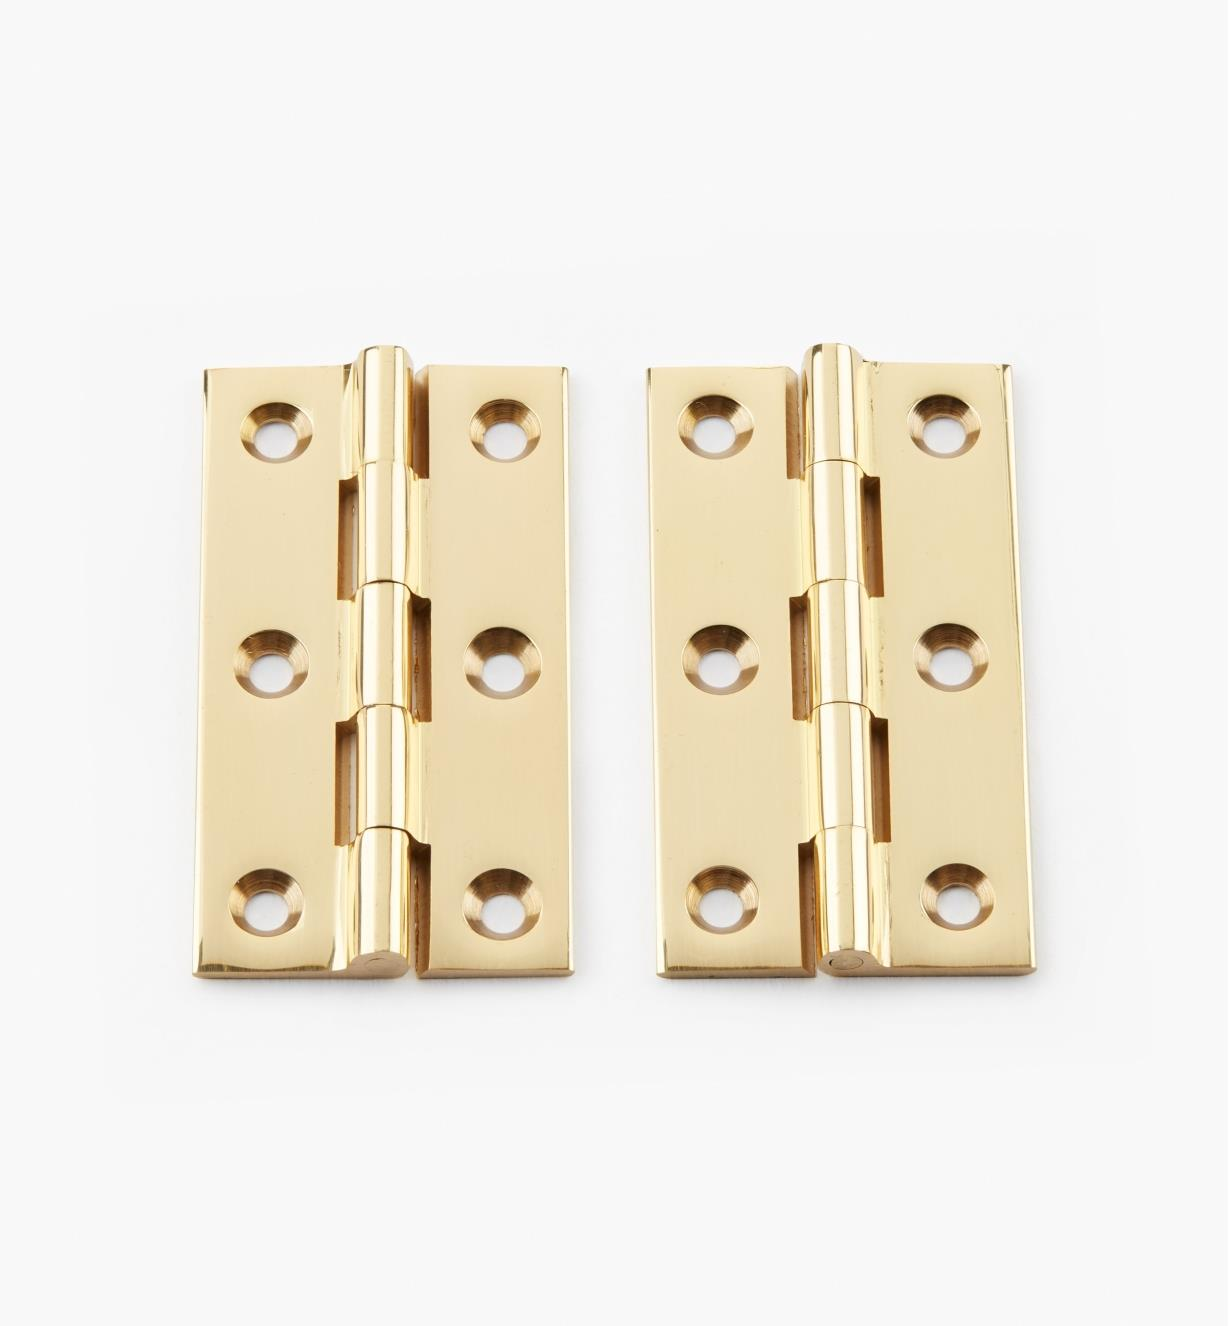 "00D0201 - 2"" × 1 1/8"" Extruded Brass Fixed-Pin Butt Hinges, pr."